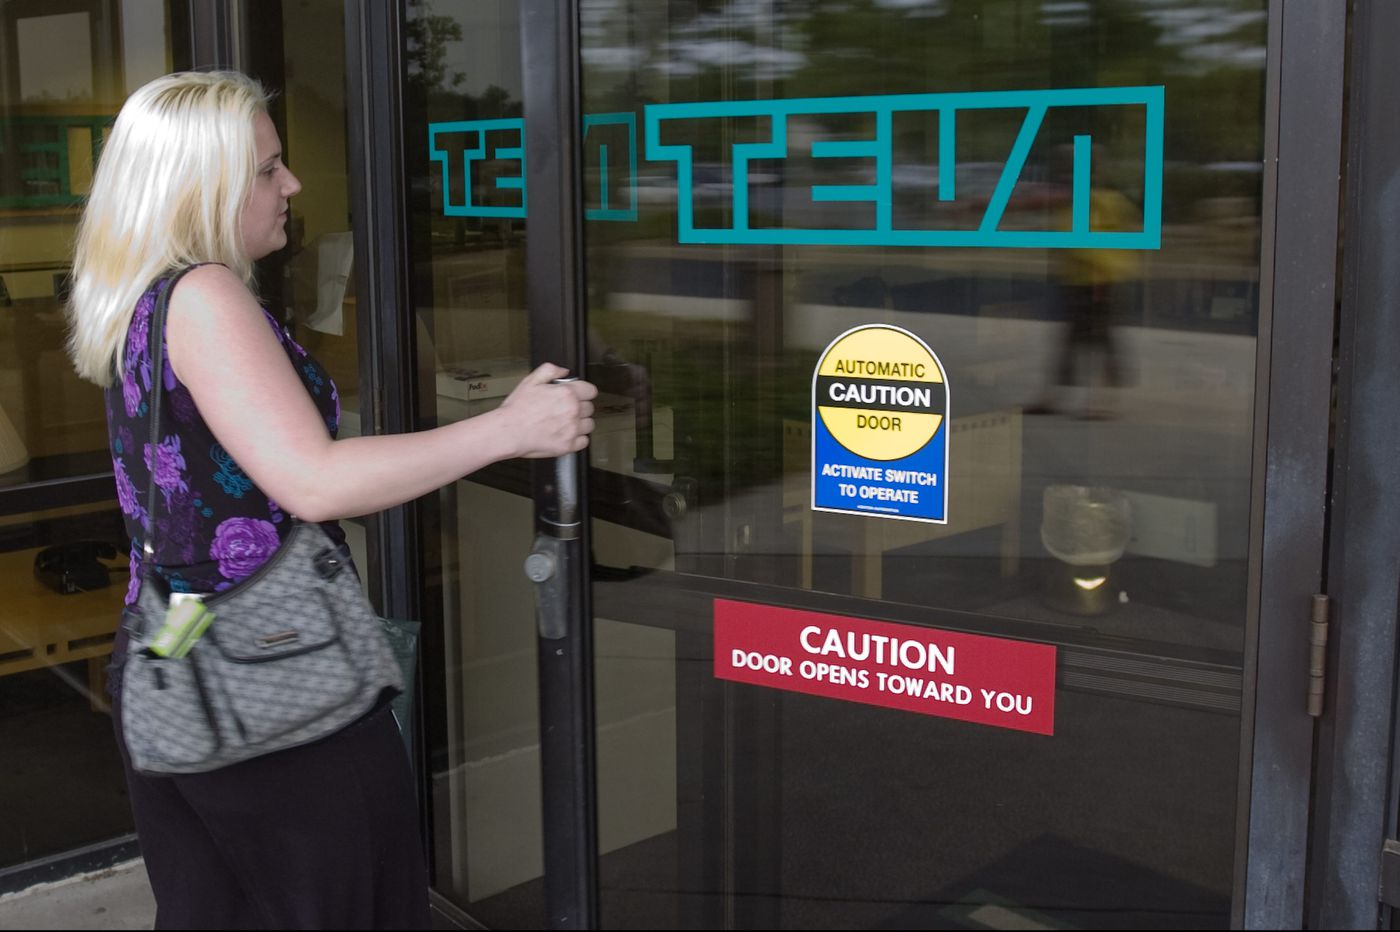 UPDATE: N.J.'s $40M lures Teva HQ; Pa. refused to counter-offer